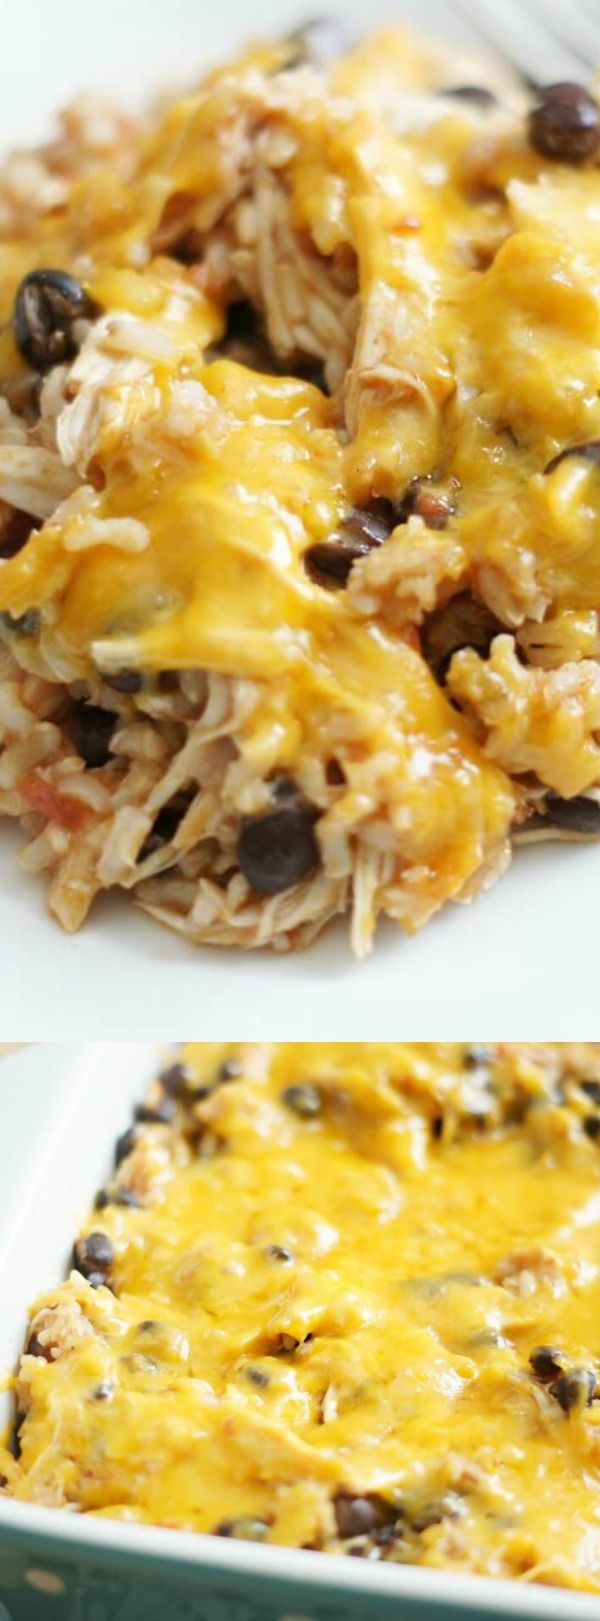 This Cheesy Chicken Enchilada Rice Bake from 5 Boys Baker is an EASY meal that is perfect for a busy weeknight. Pick up your favorite rotisserie chicken (we love to pick one up at Costco!) and pair it with a few simple ingredients — and bake it until it's nice and hot!